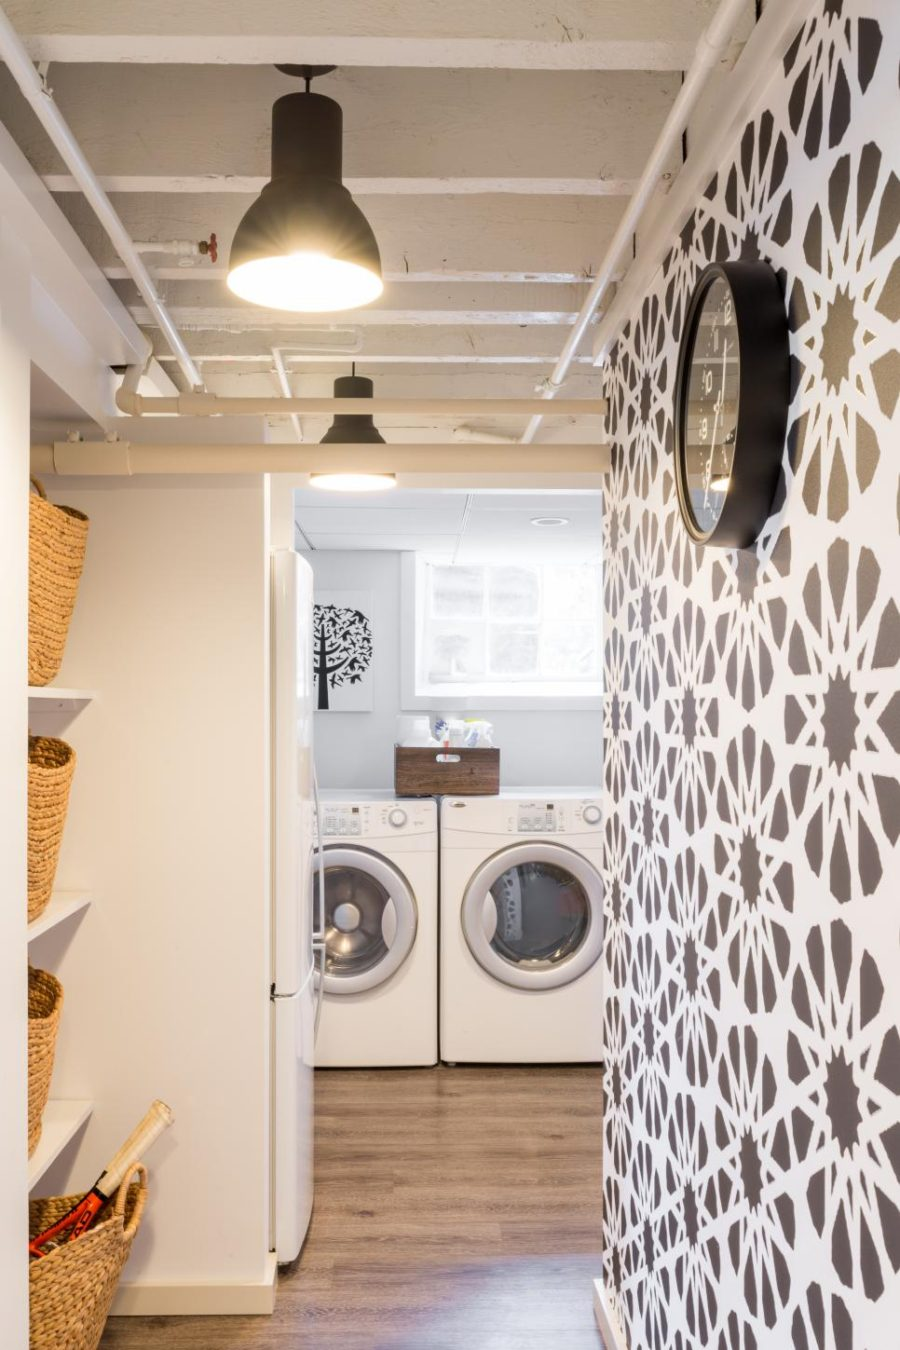 Basement laundry room by Justine Sterling